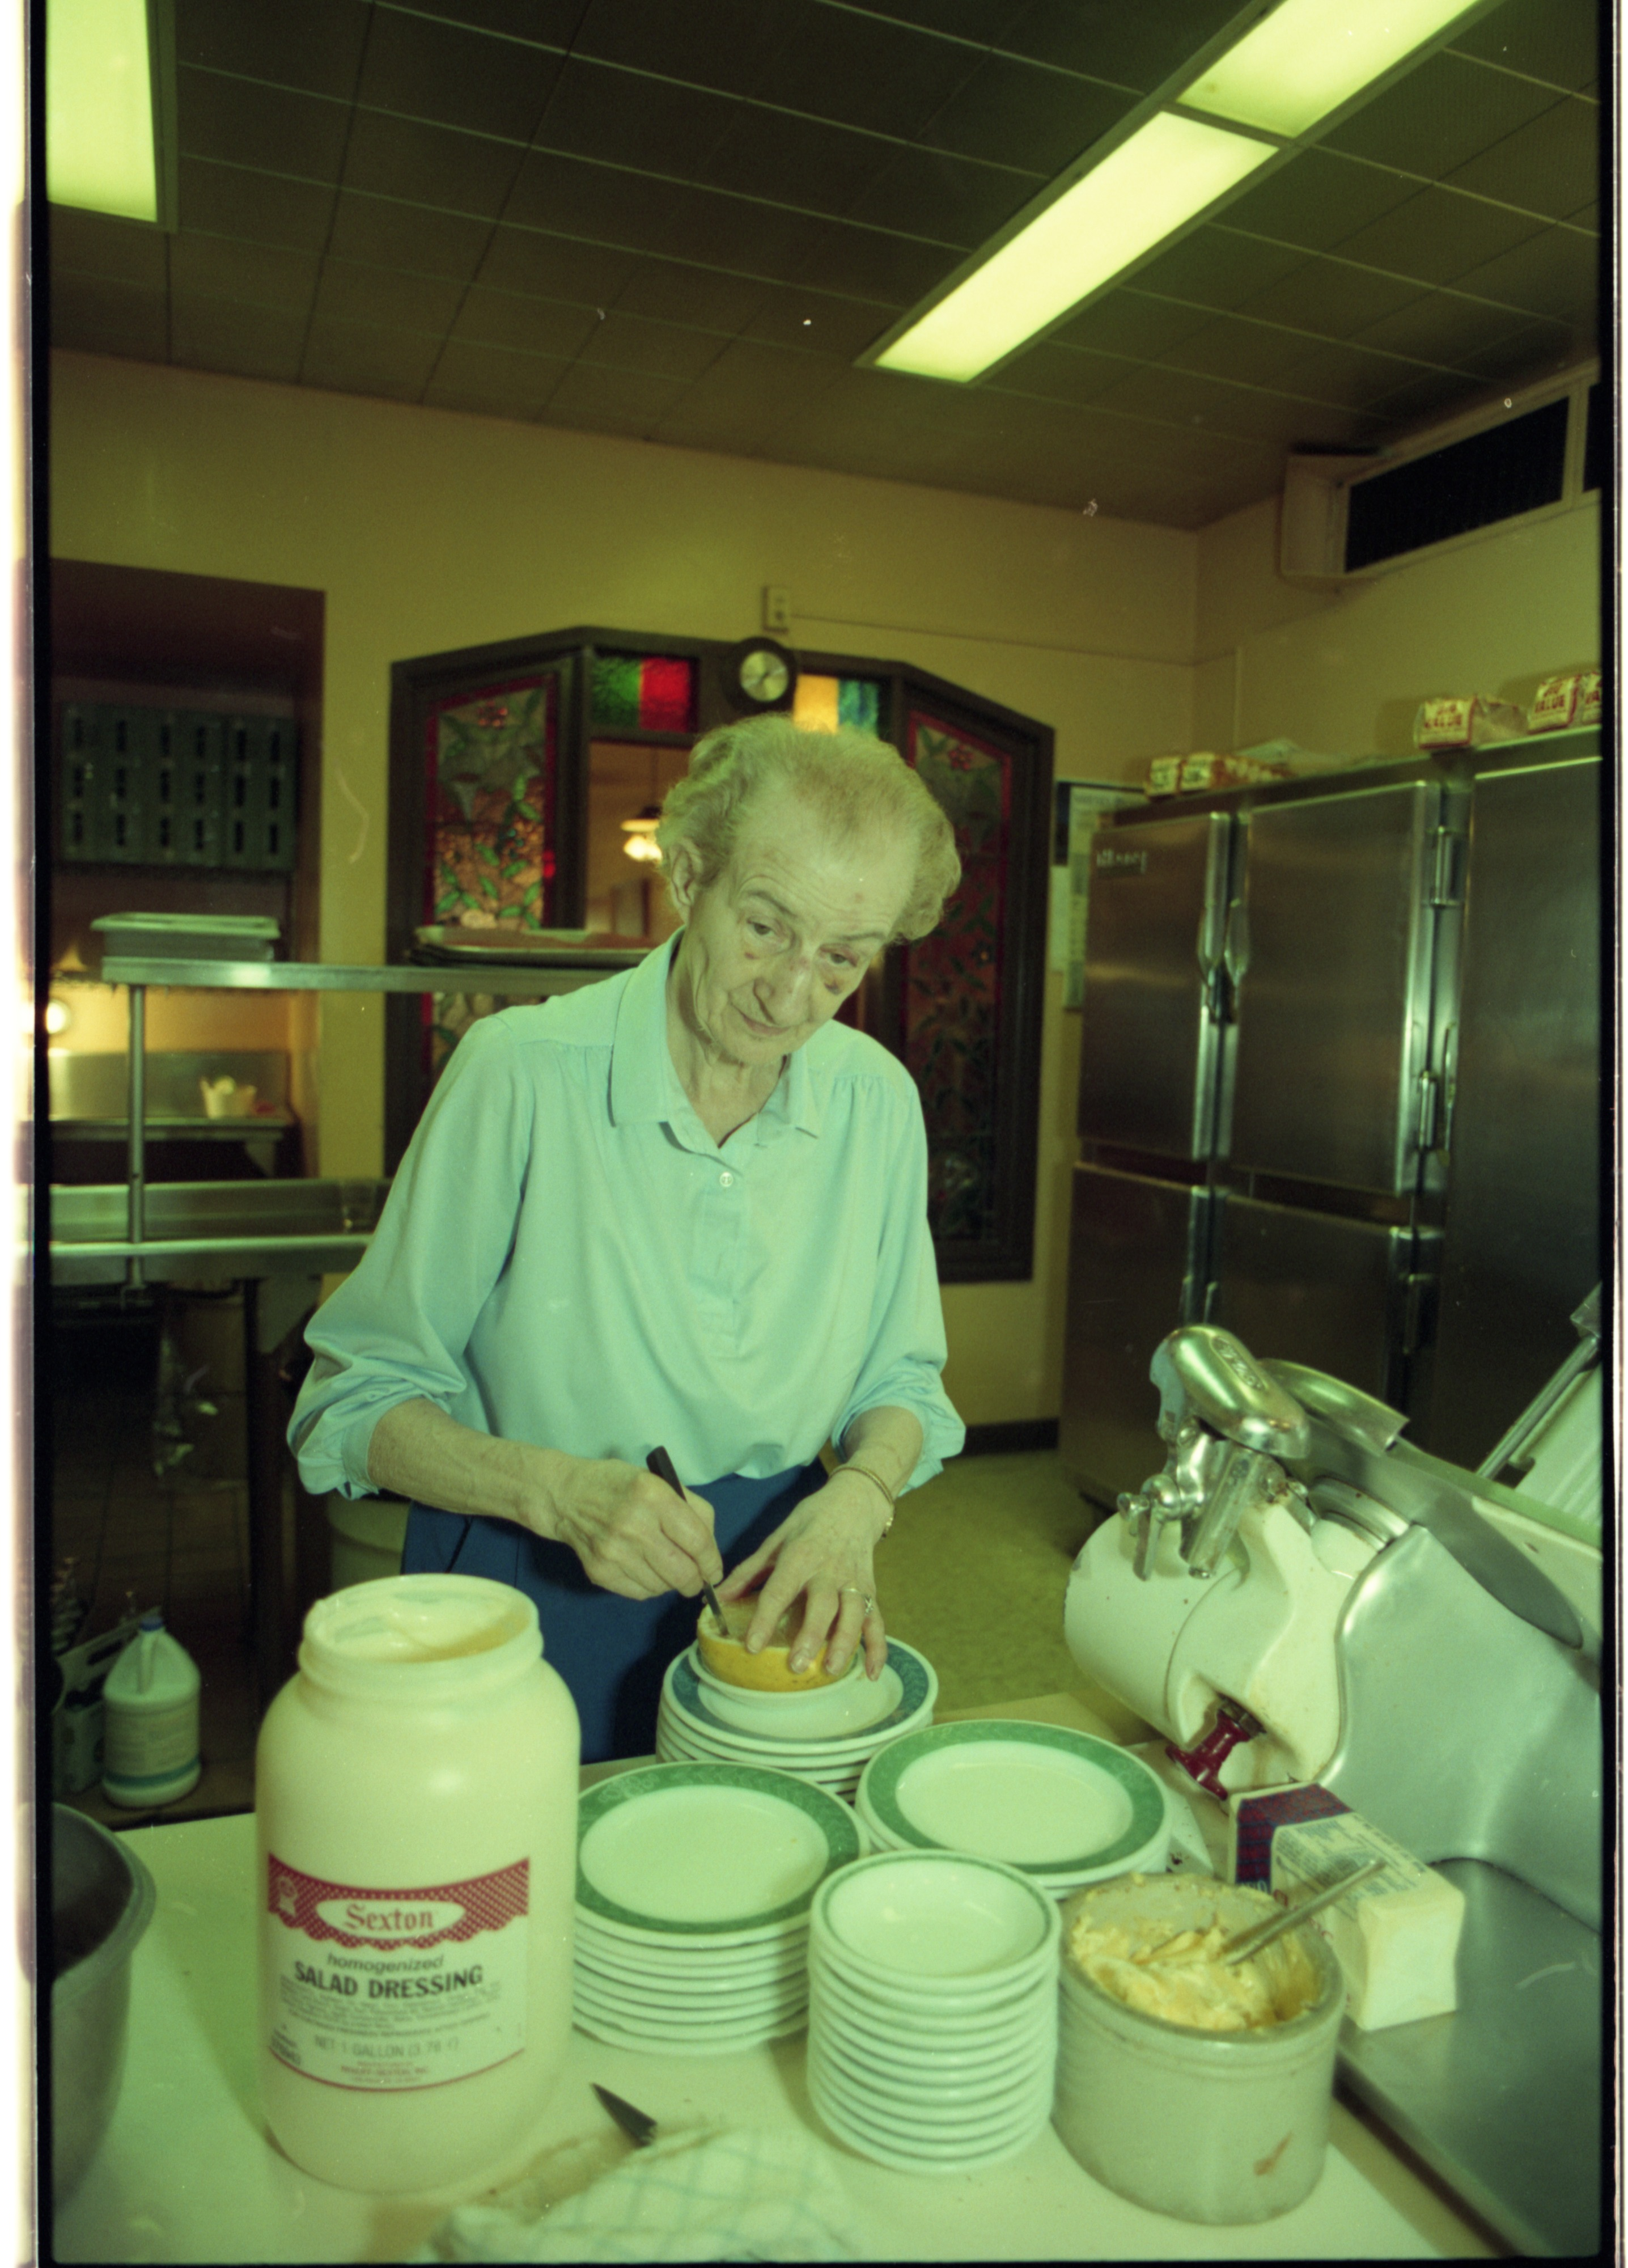 Roundtable Restaurant Owner Evelyn Stack Retiring After 50 Years, May 1993 image